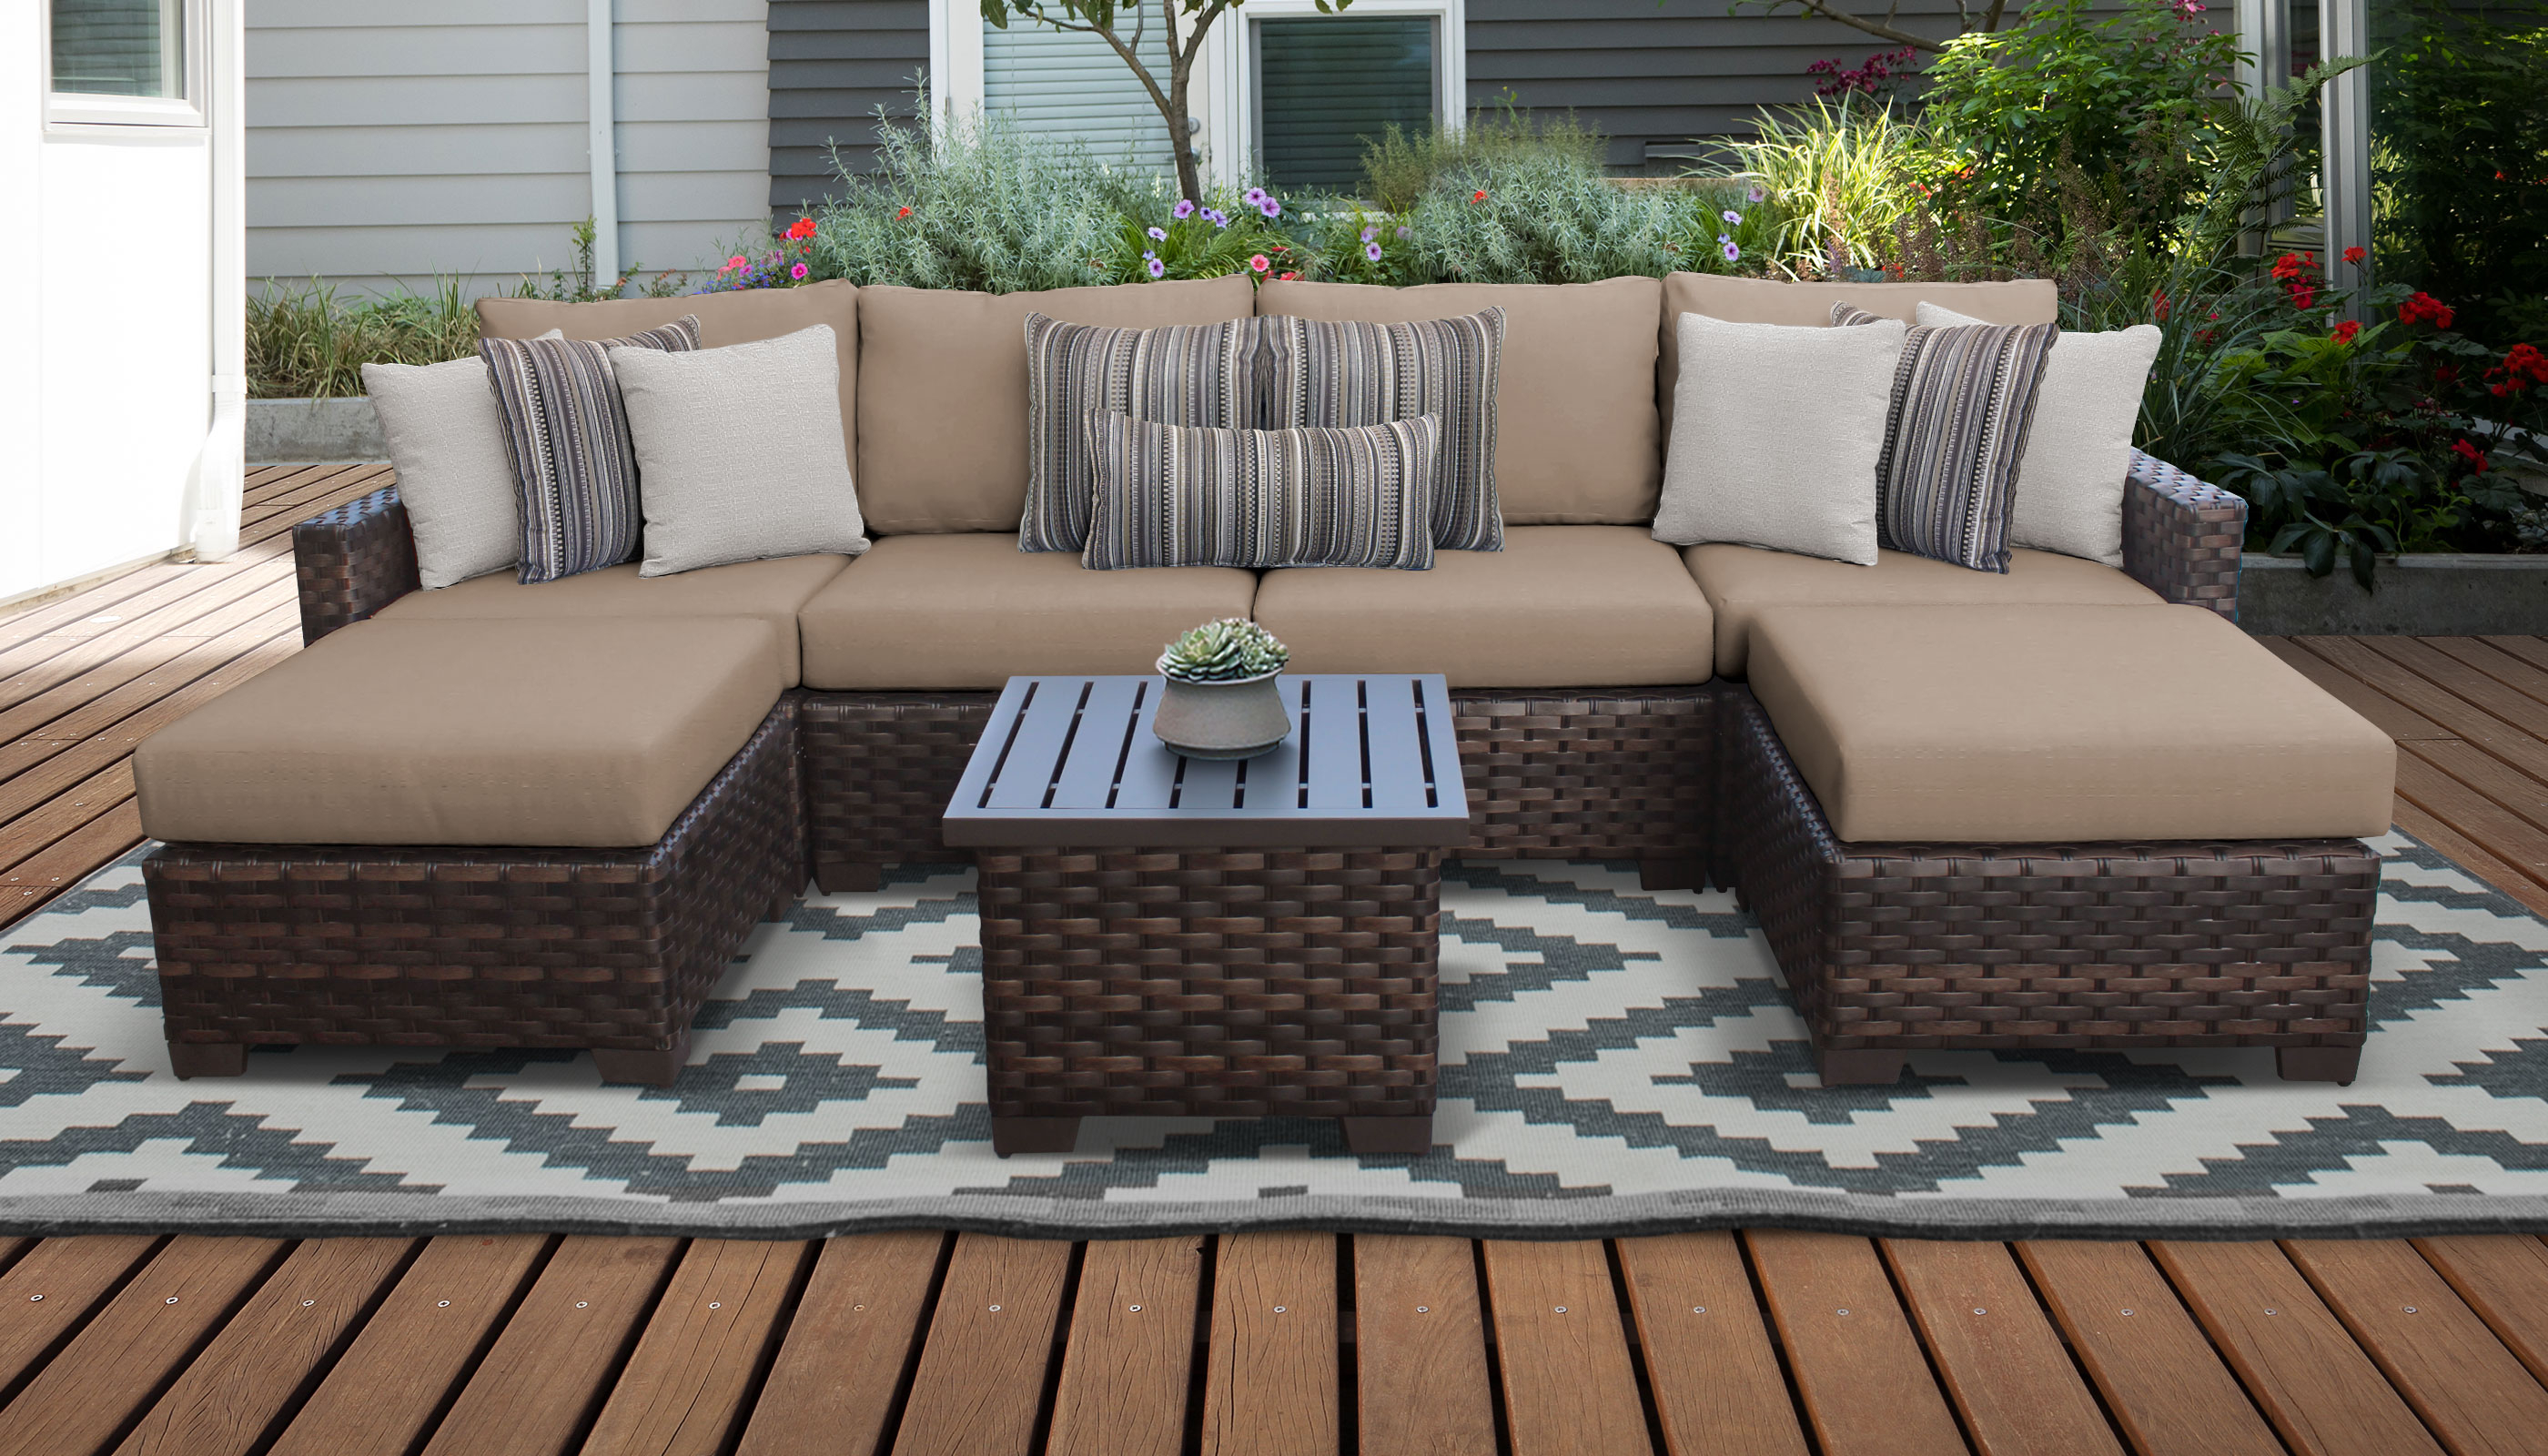 Oreland Patio Sofas With Cushions Inside Favorite River 7 Piece Outdoor Wicker Patio Furniture Set 07a (View 14 of 20)